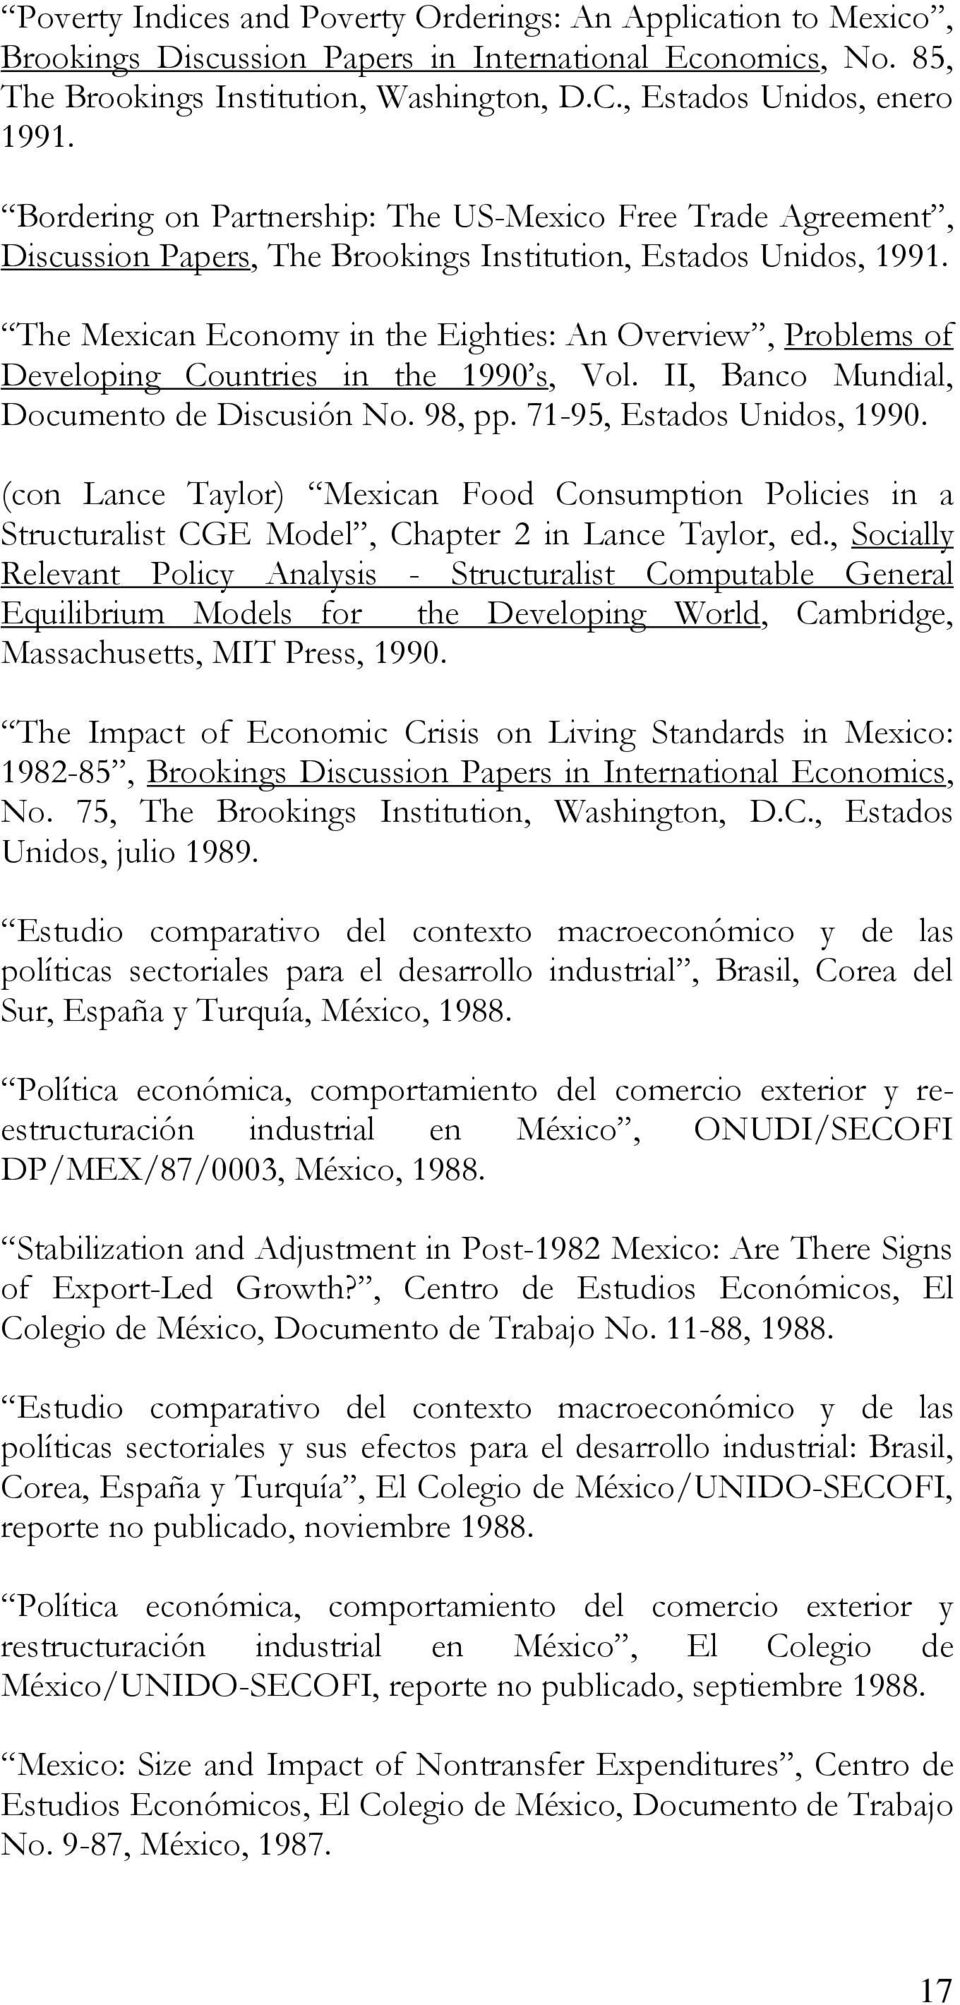 The Mexican Economy in the Eighties: An Overview, Problems of Developing Countries in the 1990 s, Vol. II, Banco Mundial, Documento de Discusión No. 98, pp. 71-95, Estados Unidos, 1990.